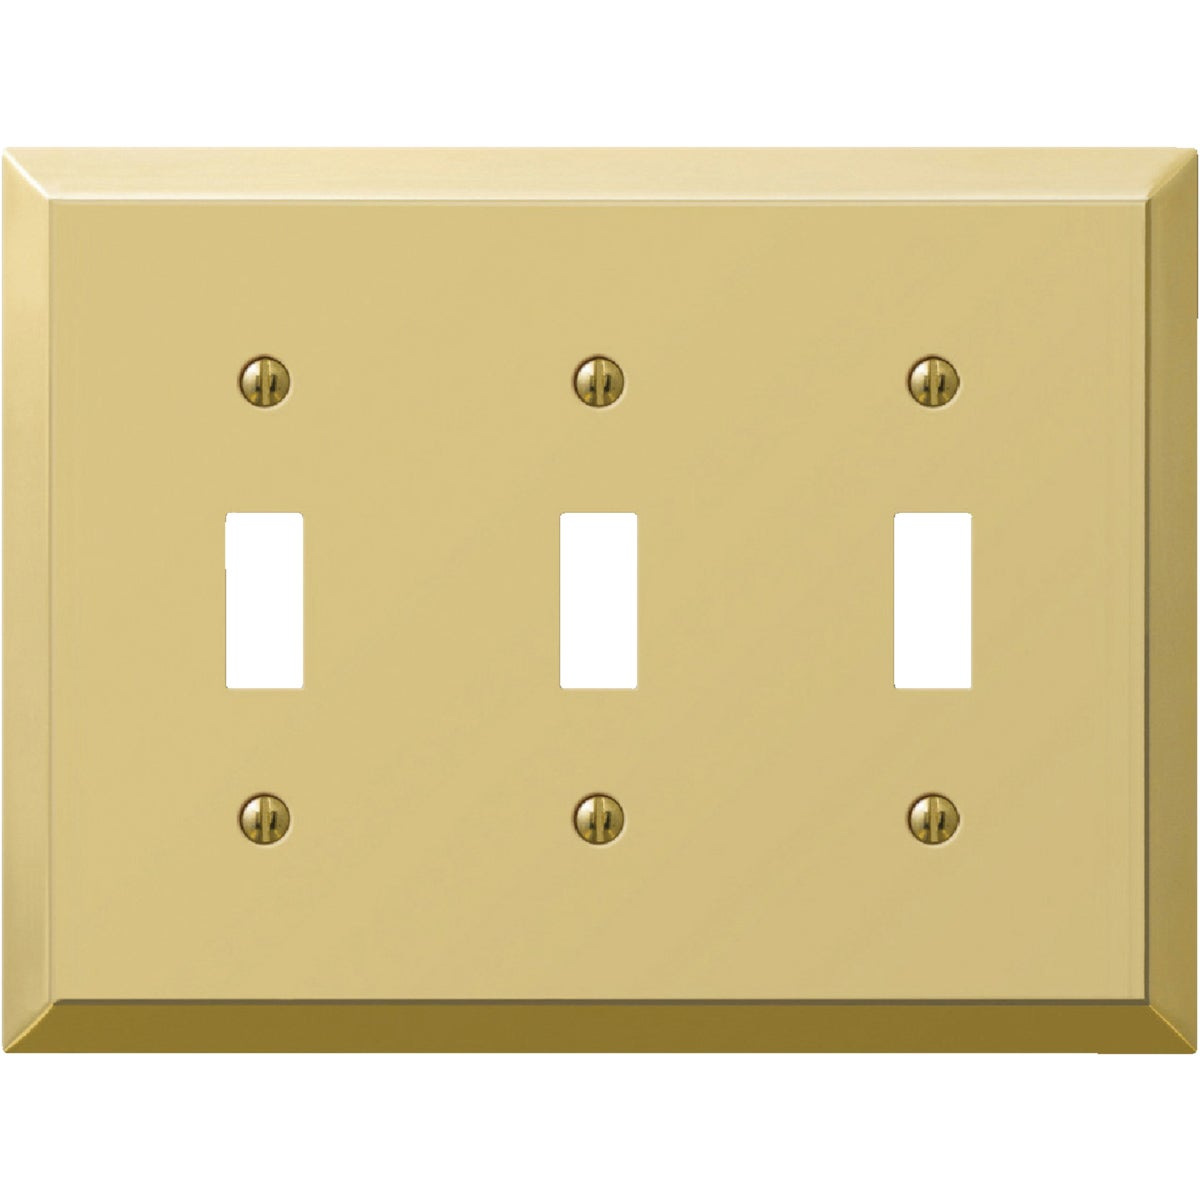 BRS 3-TOGGLE WALL PLATE - 9BS103 by Jackson Deerfield Mf